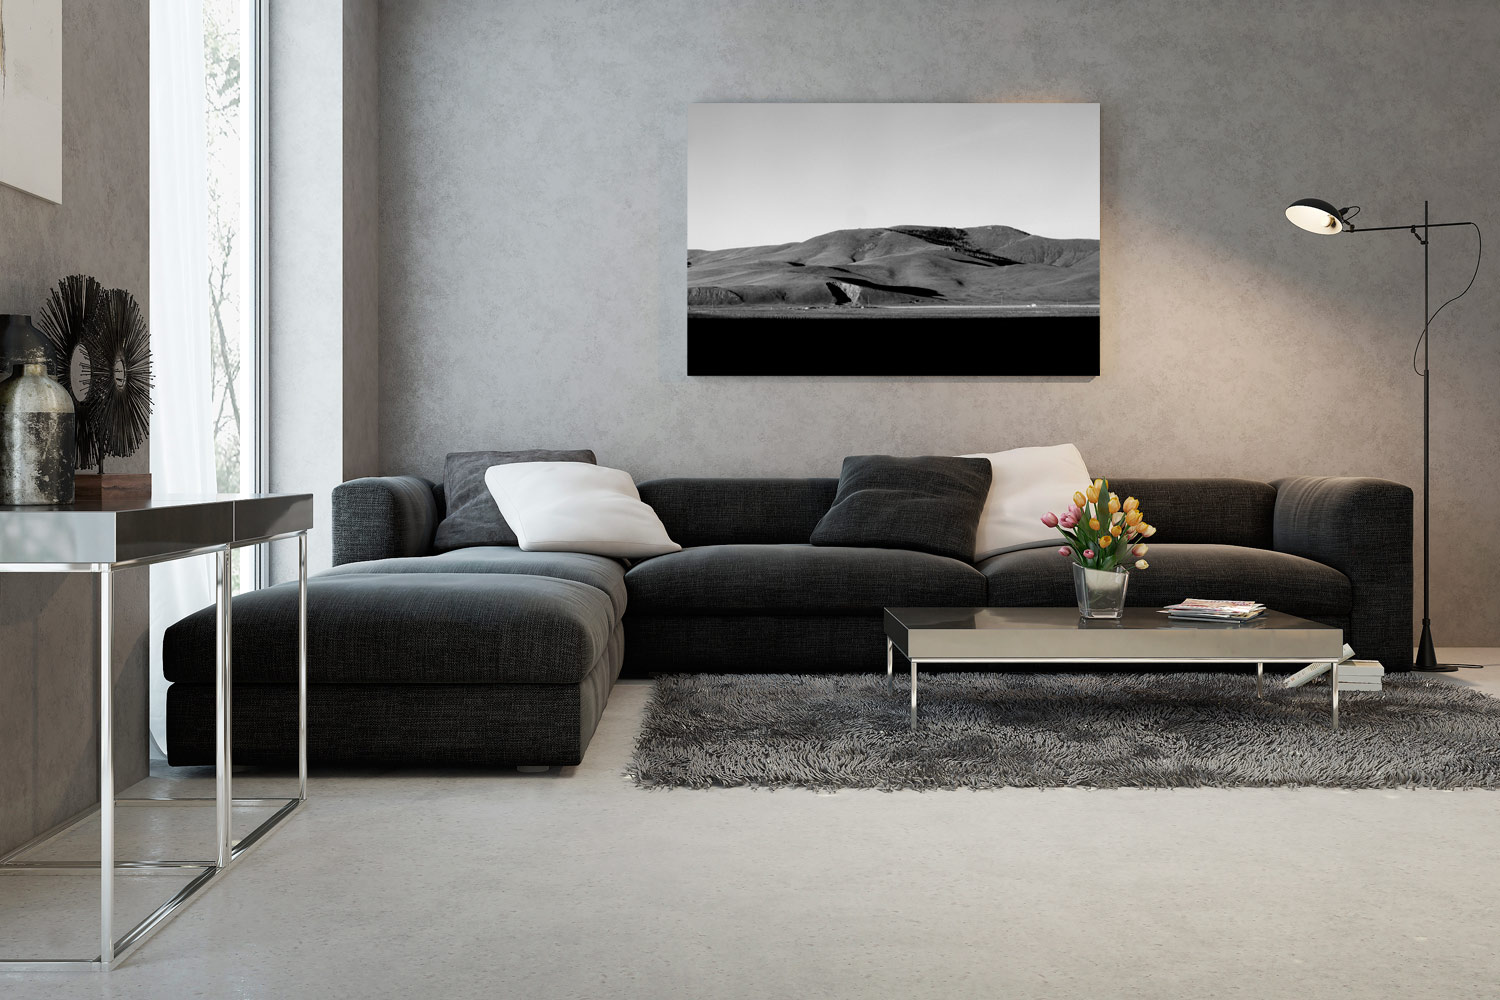 Picture Wall - lydabsorbent med fototduk